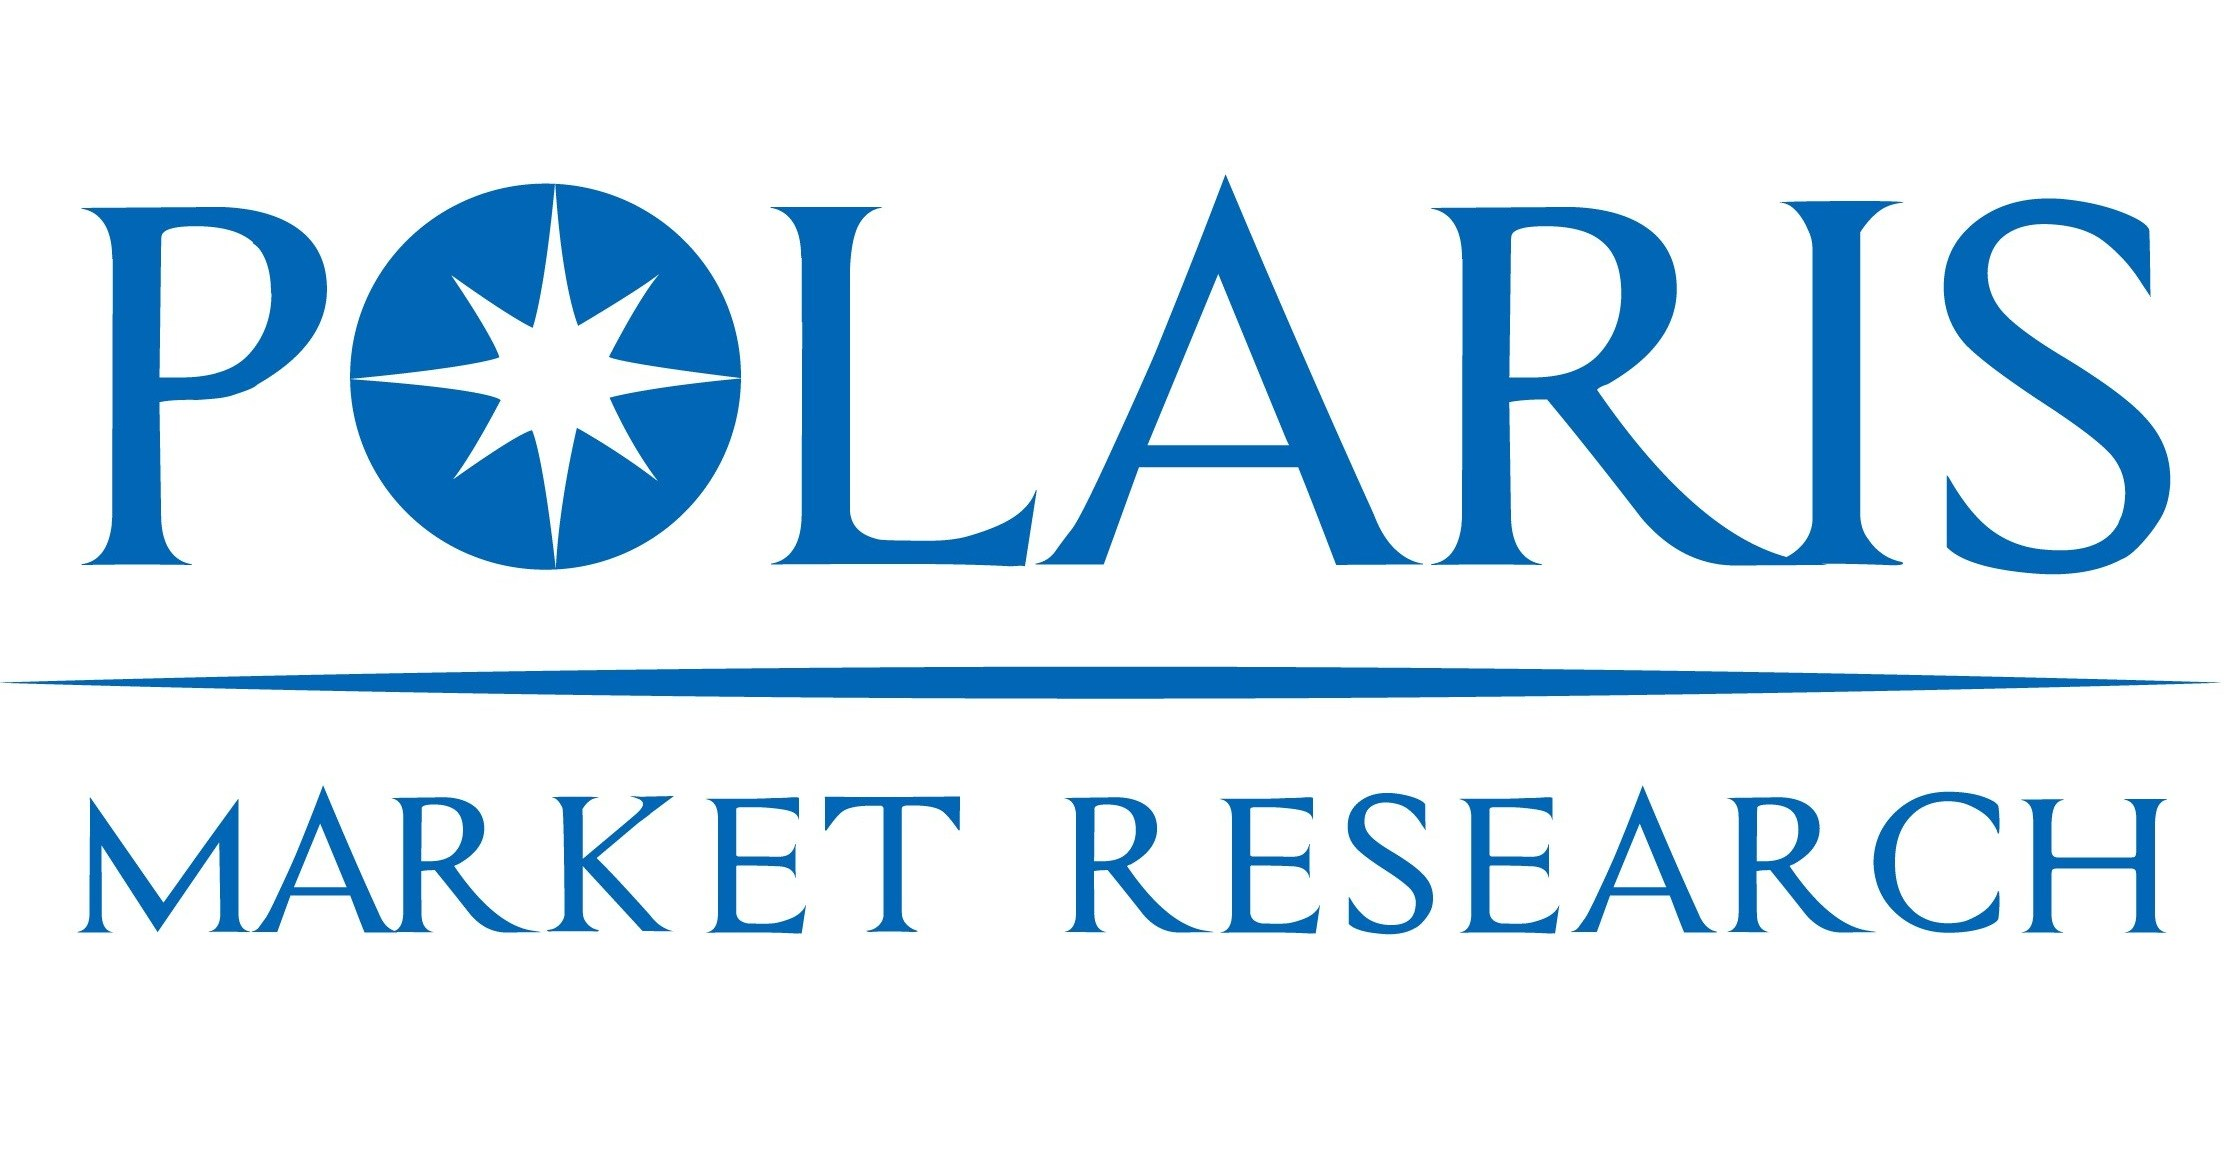 Structured Cabling Market Size Worth 15 85 Billion By 2028 Polaris Market Research